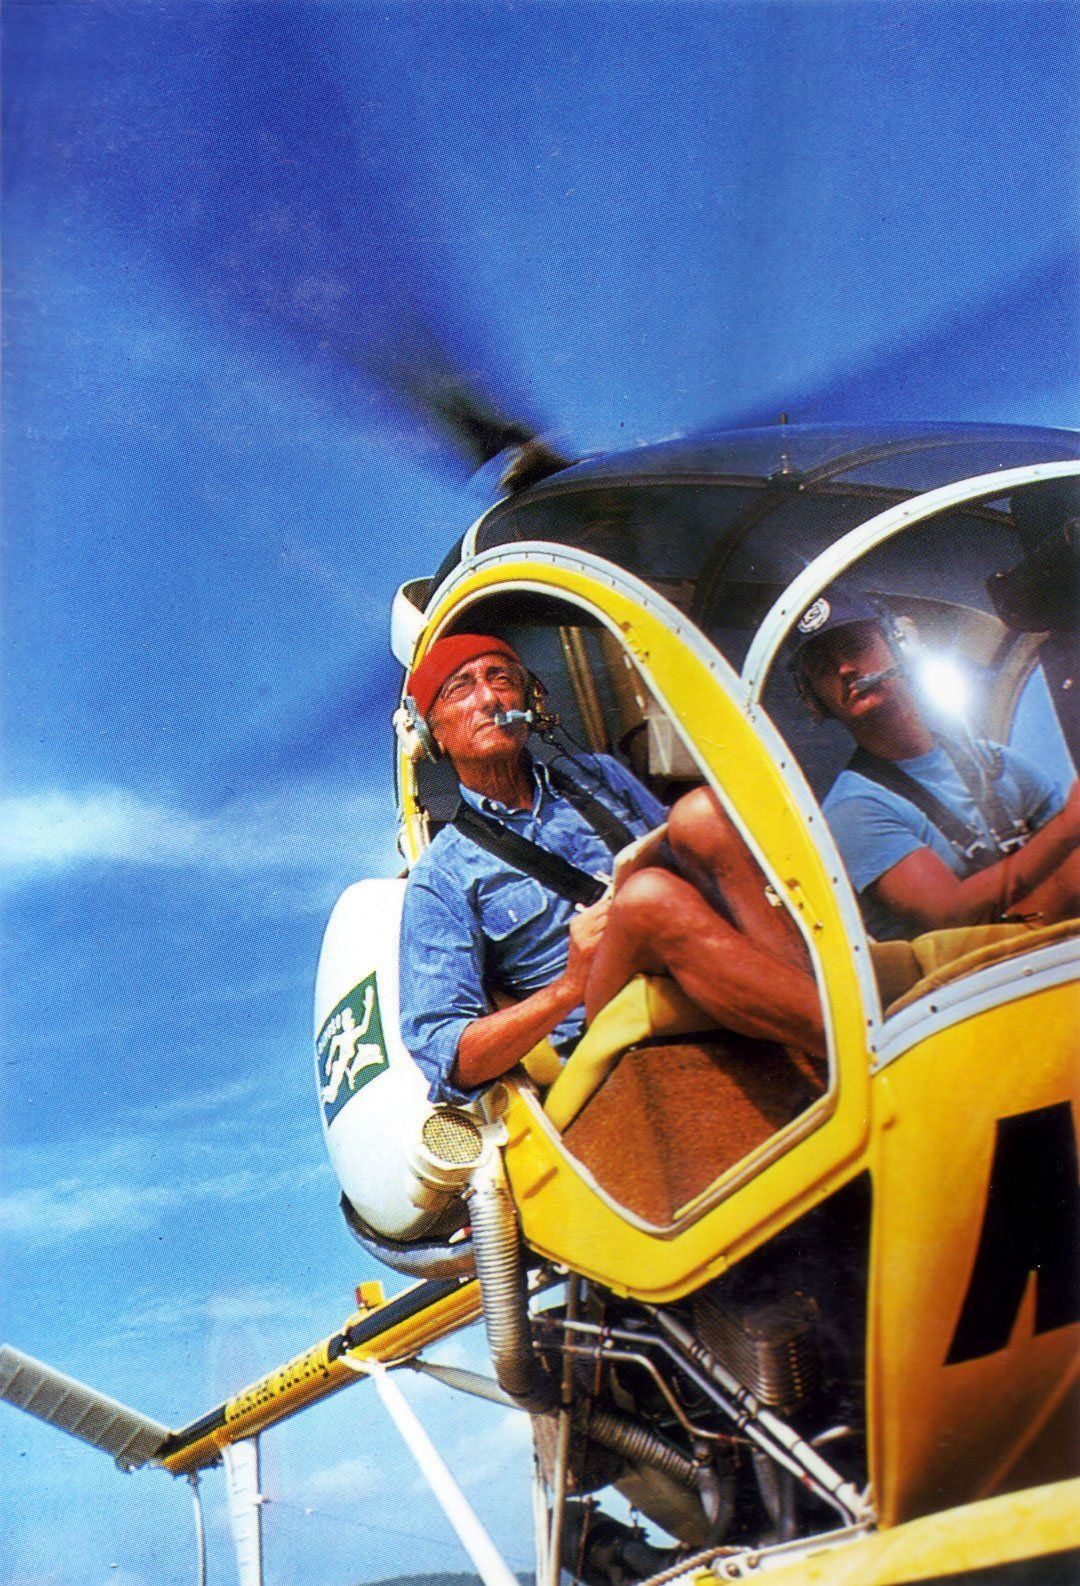 Jacques-Cousteau-Calypso-Helicopter.jpg